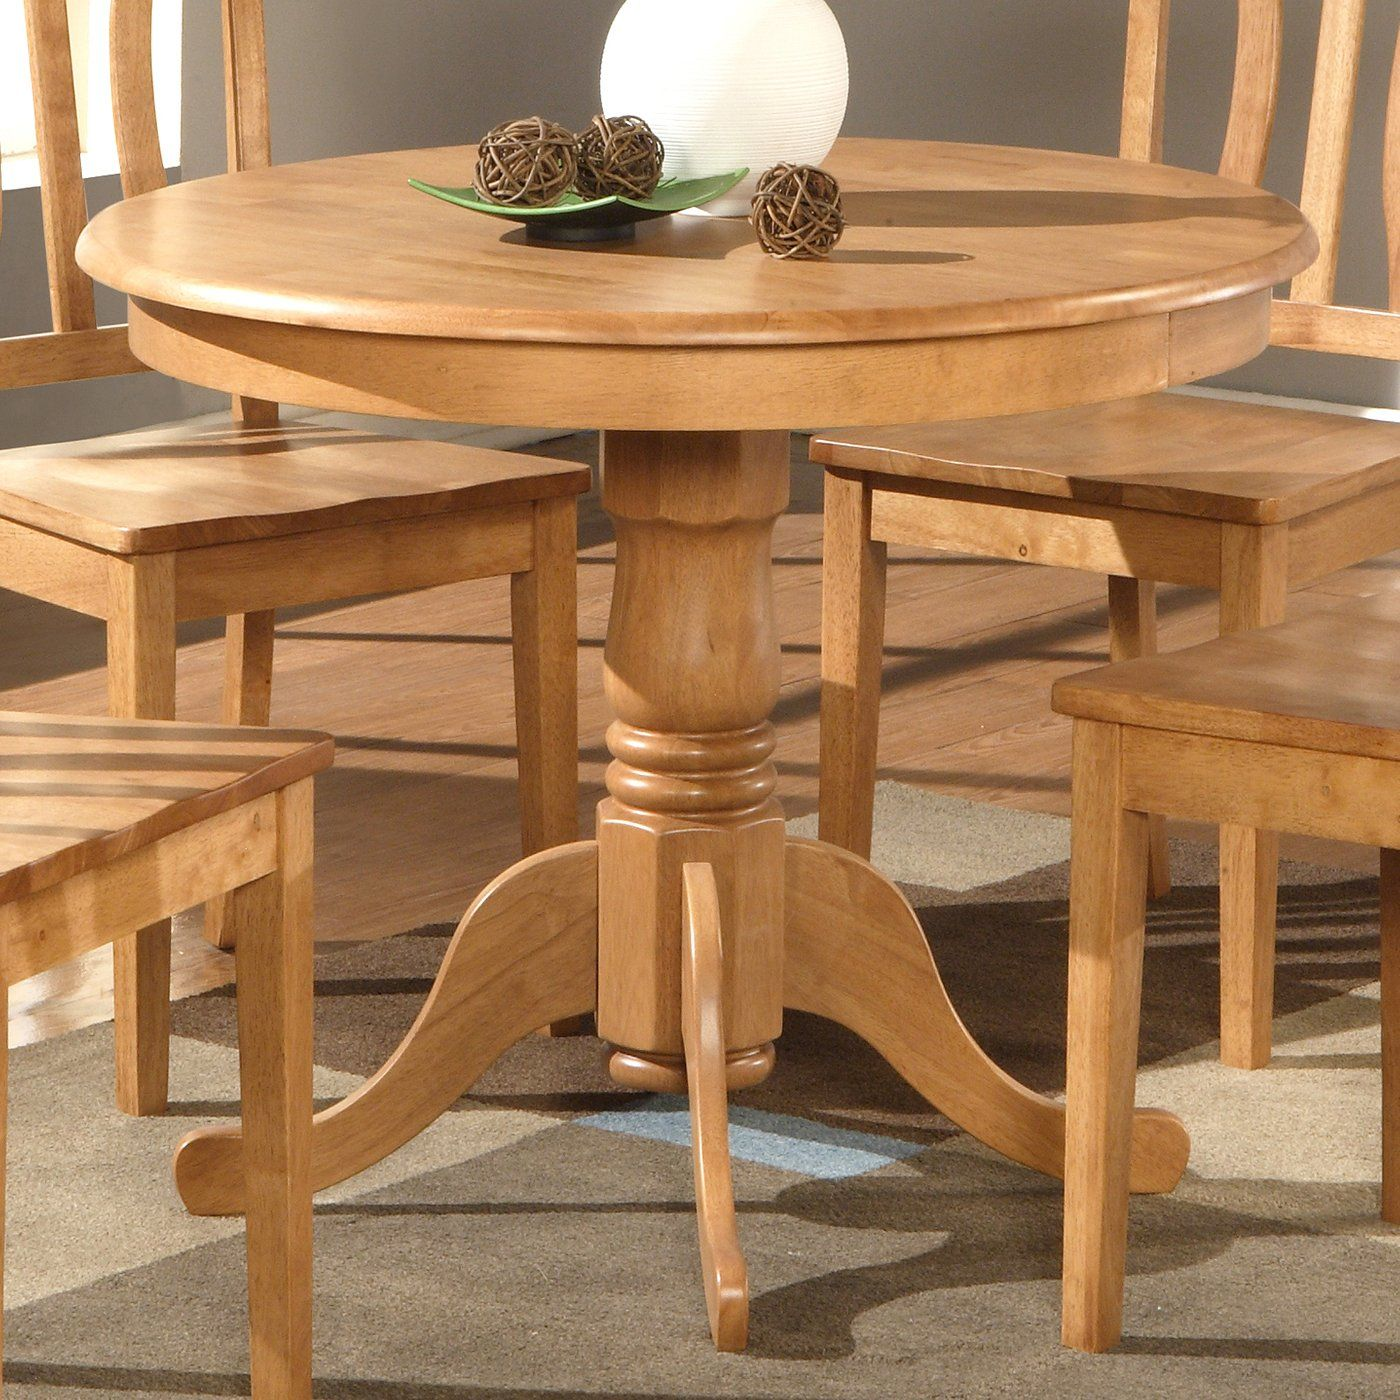 193 Wooden Imports Ad01 T Antique 36 Round Dining Table Home Furniture Showroom Round Wood Dining Table Dining Table Kitchen Table Oak